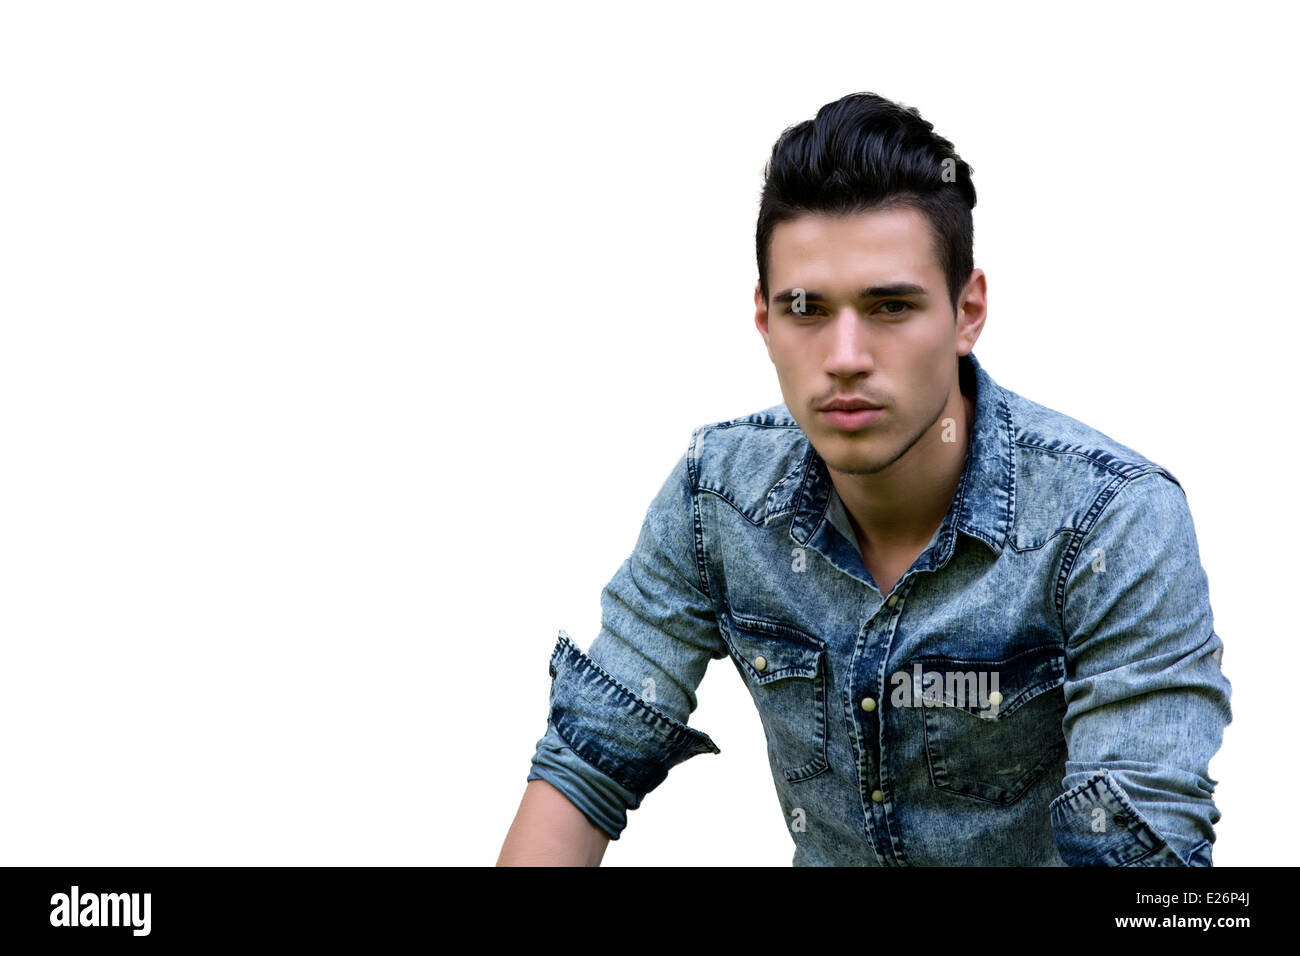 Handsome black haired young man in denim shirt isolated on white background - Stock Image